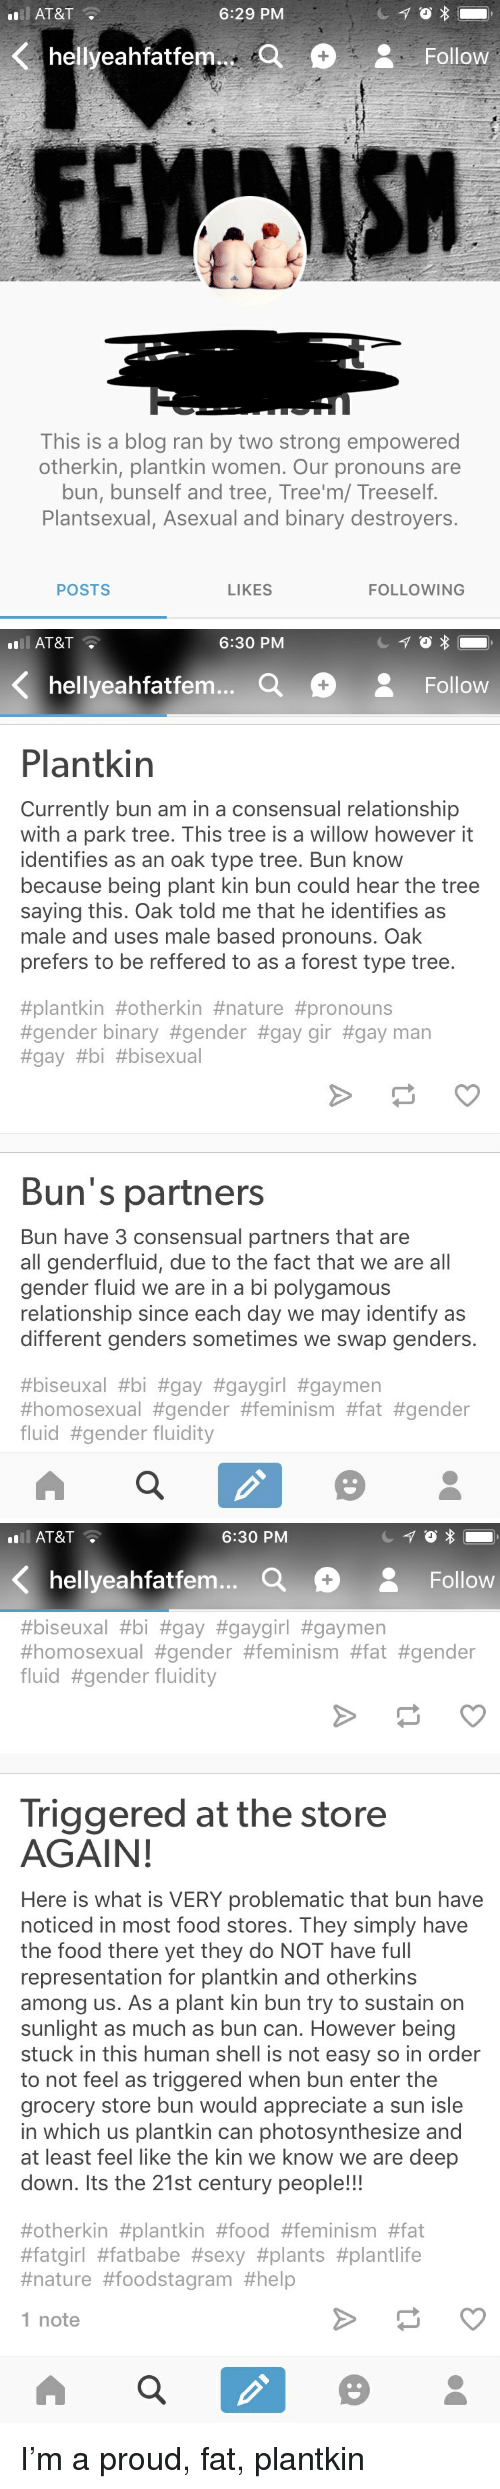 willow: AT&T  6:29 PM  FEMAISH  This is a blog ran by two strong empowered  otherkin, plantkin women. Our pronouns are  bun, bunself and tree, Tree'm/ Treeself  Plantsexual, Asexual and binary destroyers.  POSTS  LIKES  FOLLOWING   ll AT&T  6:30 PM  hellyeahfatfem...  Follow  Plantkin  Currently bun am in a consensual relationship  with a park tree. This tree is a willow however it  identifies as an oak type tree. Bun know  because being plant kin bun could hear the tree  saying this. Oak told me that he identifies as  male and uses male based pronouns. Oak  prefers to be reffered to as a forest type tree  #plantkin #otherkin #nature #pronouns  #gender binary #gender #gaygr #gay man  #gay #bi #bisexual  Bun's partners  Bun have 3 consensual partners that are  all genderfluid, due to the fact that we are all  gender fluid we are in a bi polygamous  relationship since each day we may identify as  different genders sometimes we swap genders.  #biseuxal #bi #gay #gaygirl #gaymen  #homosexual #gender #feminism #fat #gender  fluid #gender fluidity   ll AT&T  6:30 PM  hellyeahfatfem... a  Follow  #biseuxal #bi #gay #gaygirl #gaymen  #homosexual #gender #feminism #fat #gender  fluid #gender fluidity  Triggered at the store  AGAIN  Here is what is VERY problematic that bun have  noticed in most food stores. They simply have  the food there yet they do NOT have full  representation for plantkin and otherkins  among us. As a plant kin bun try to sustain on  sunlight as much as bun can. However being  stuck in this human shell is not easy so in order  to not feel as triggered when bun enter the  grocery store bun would appreciate a sun isle  in which us plantkin can photosynthesize and  at least feel like the kin we know we are deep  down. Its the 21st century people!!!  #otherkin #plantkin #food #feminism #fat  #fatgirl #fatbabe #sexy #plants #plantlife  #nature #foodstagram #help  1 note I'm a proud, fat, plantkin